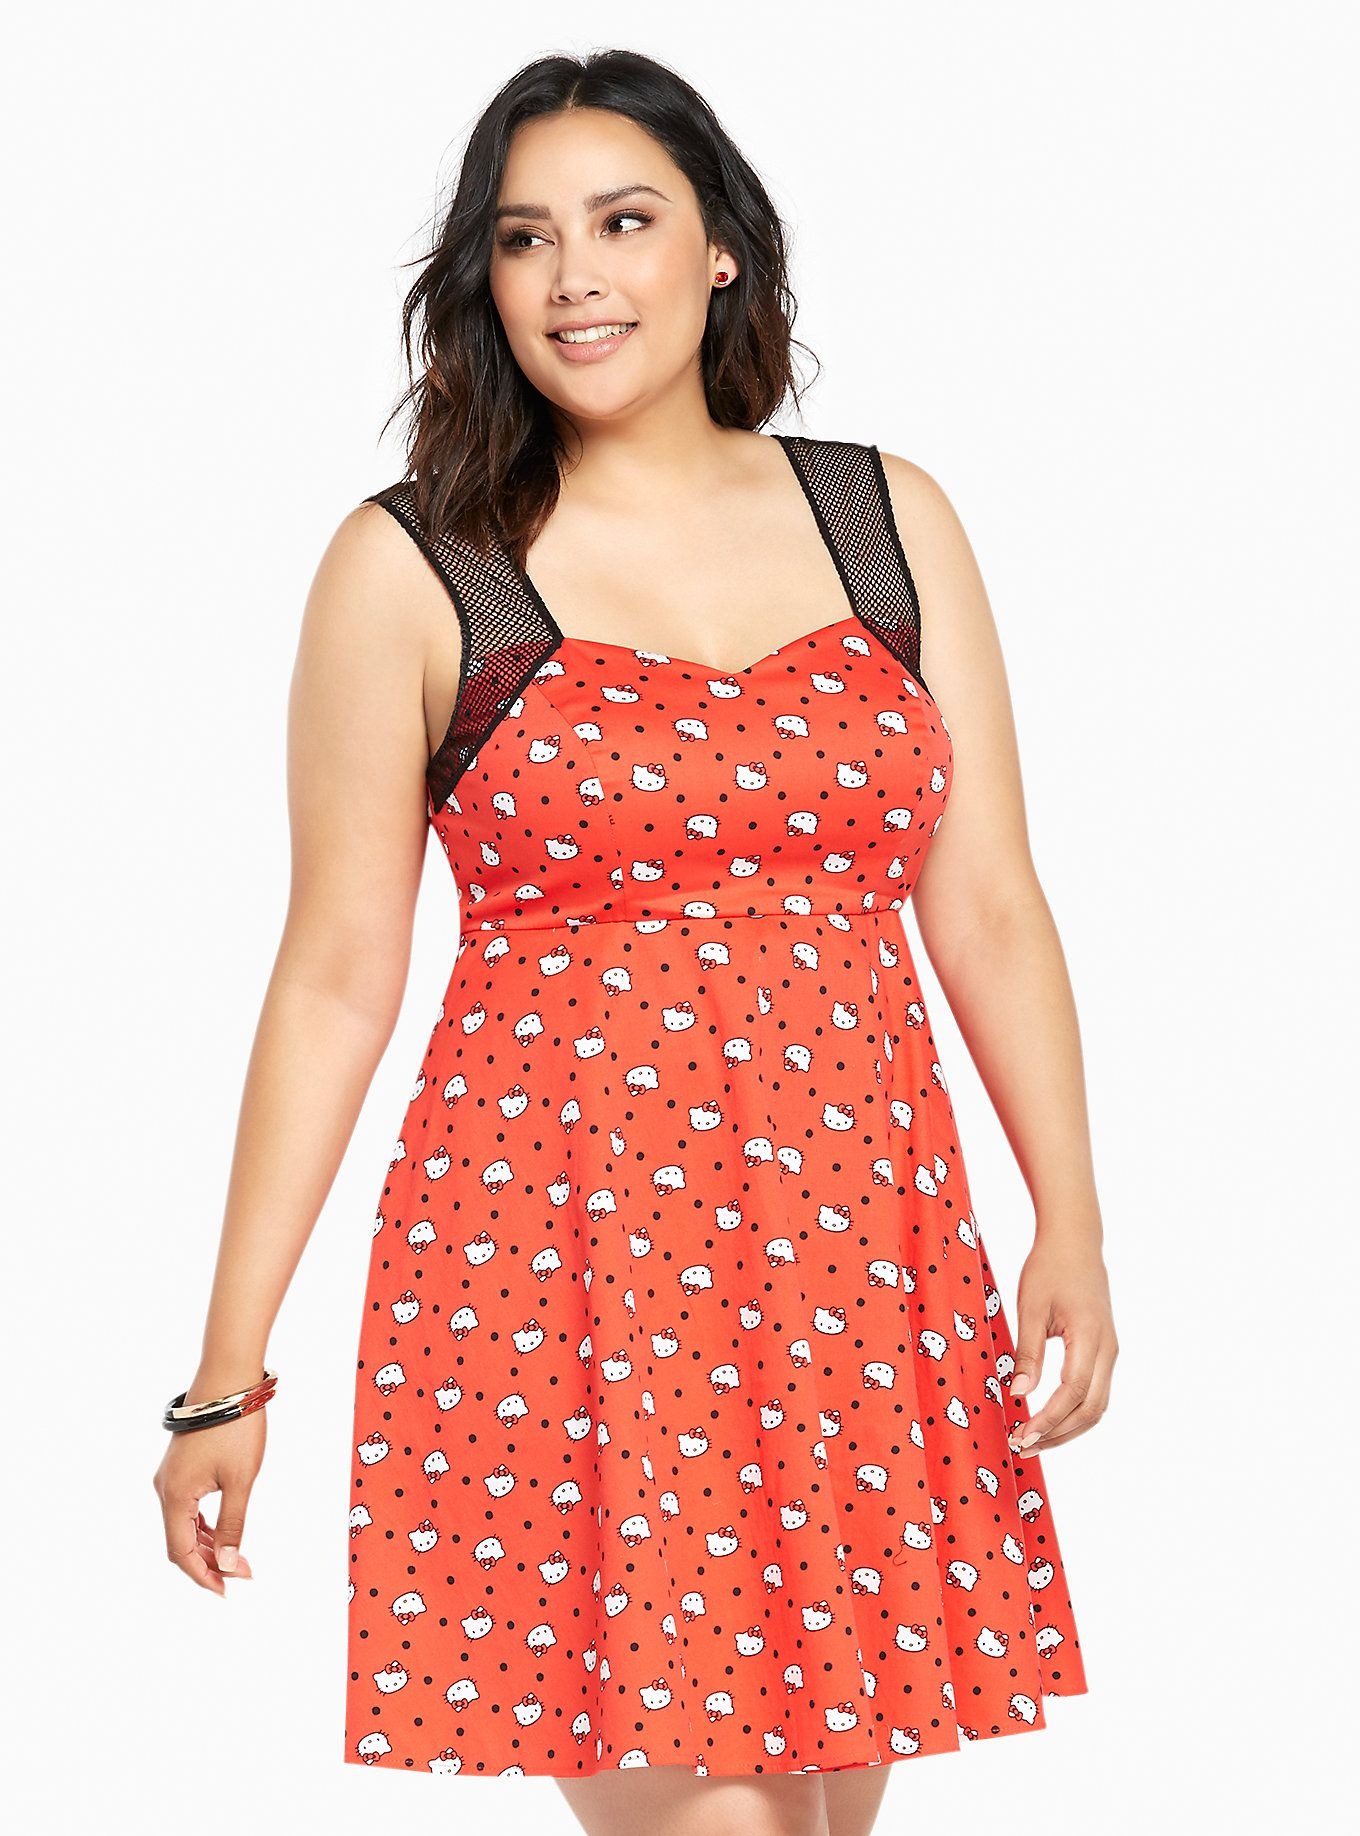 Sanrio Hello Kitty Collection Polka Dot Swing Dress